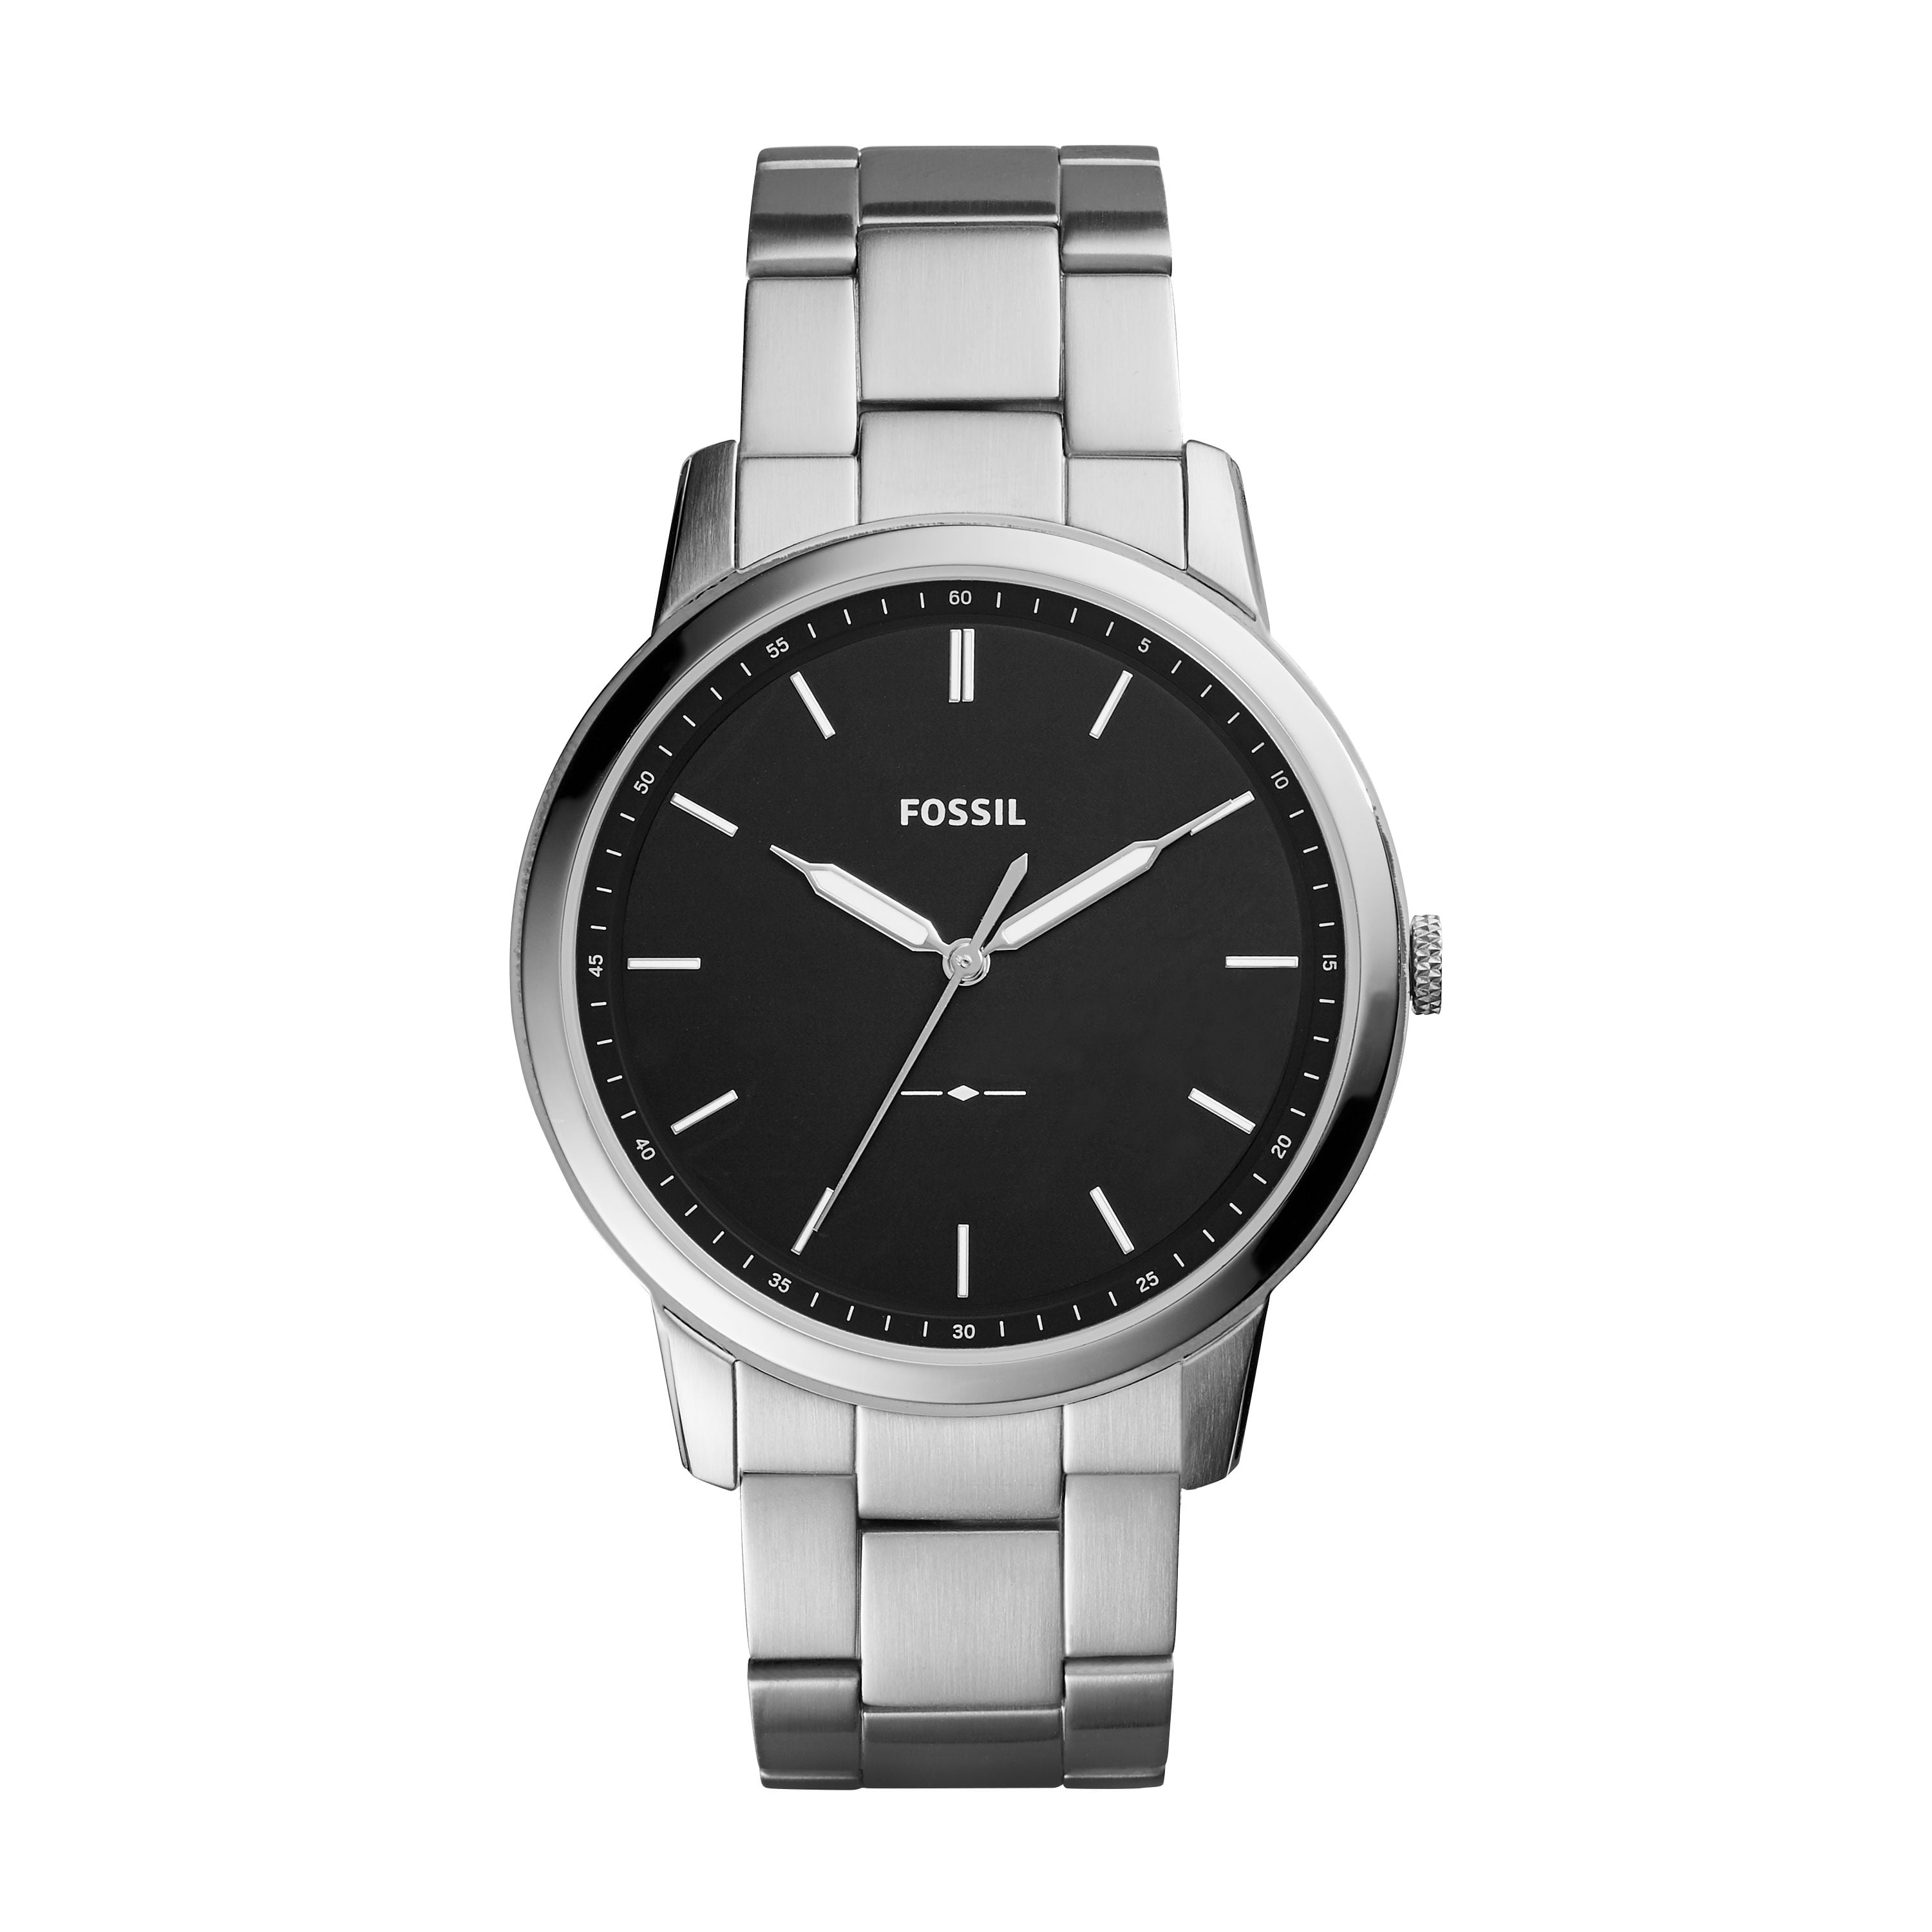 7a358a992eea Fossil - Men s The Minimalist Three-Hand Stainless Steel Watch (Style   FS5459) - Walmart.com